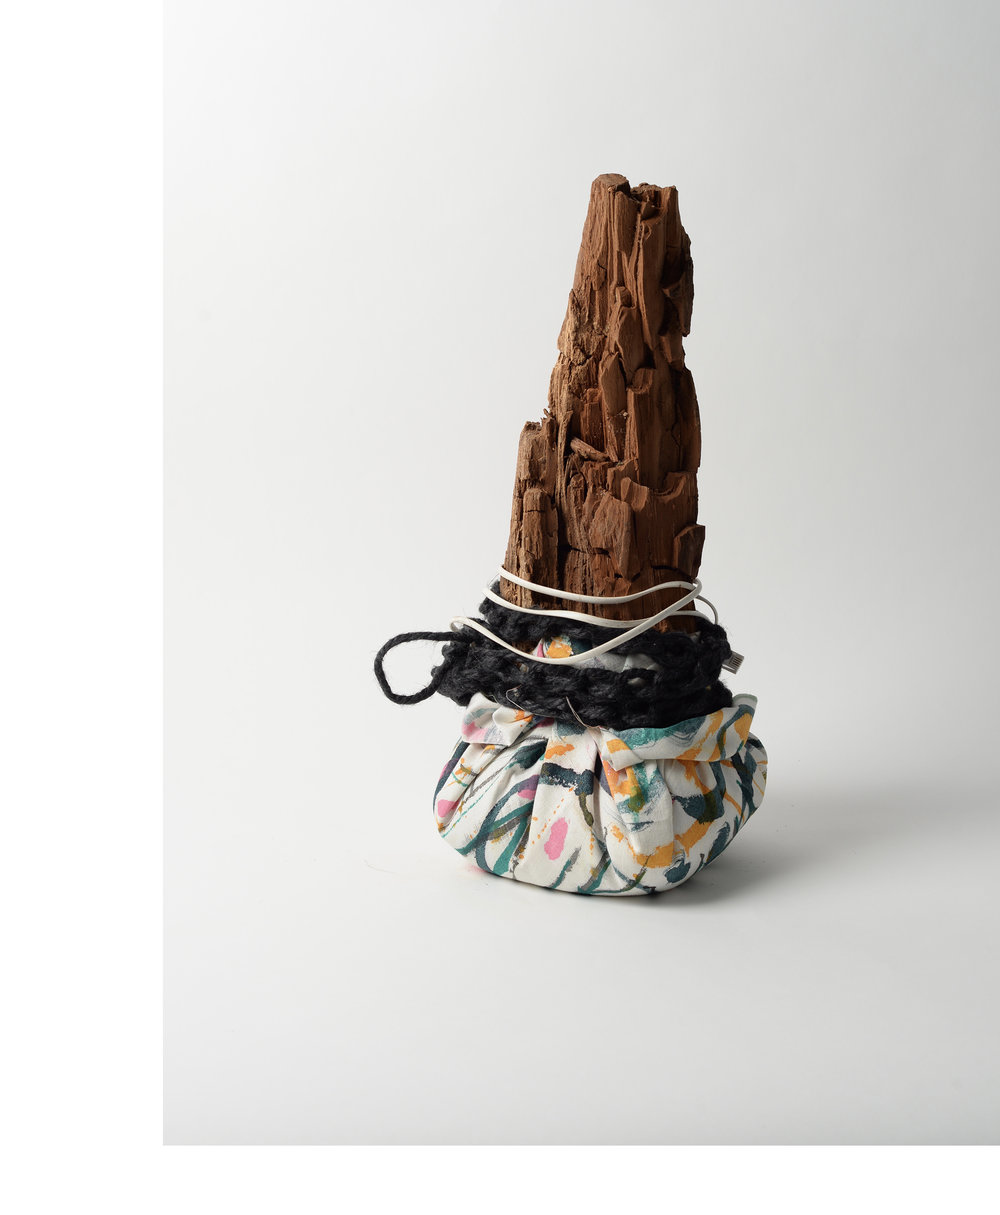 Table-cloth Mountain,  2018 painted tablecloth, wood, rice, rope, cable, string h44cm